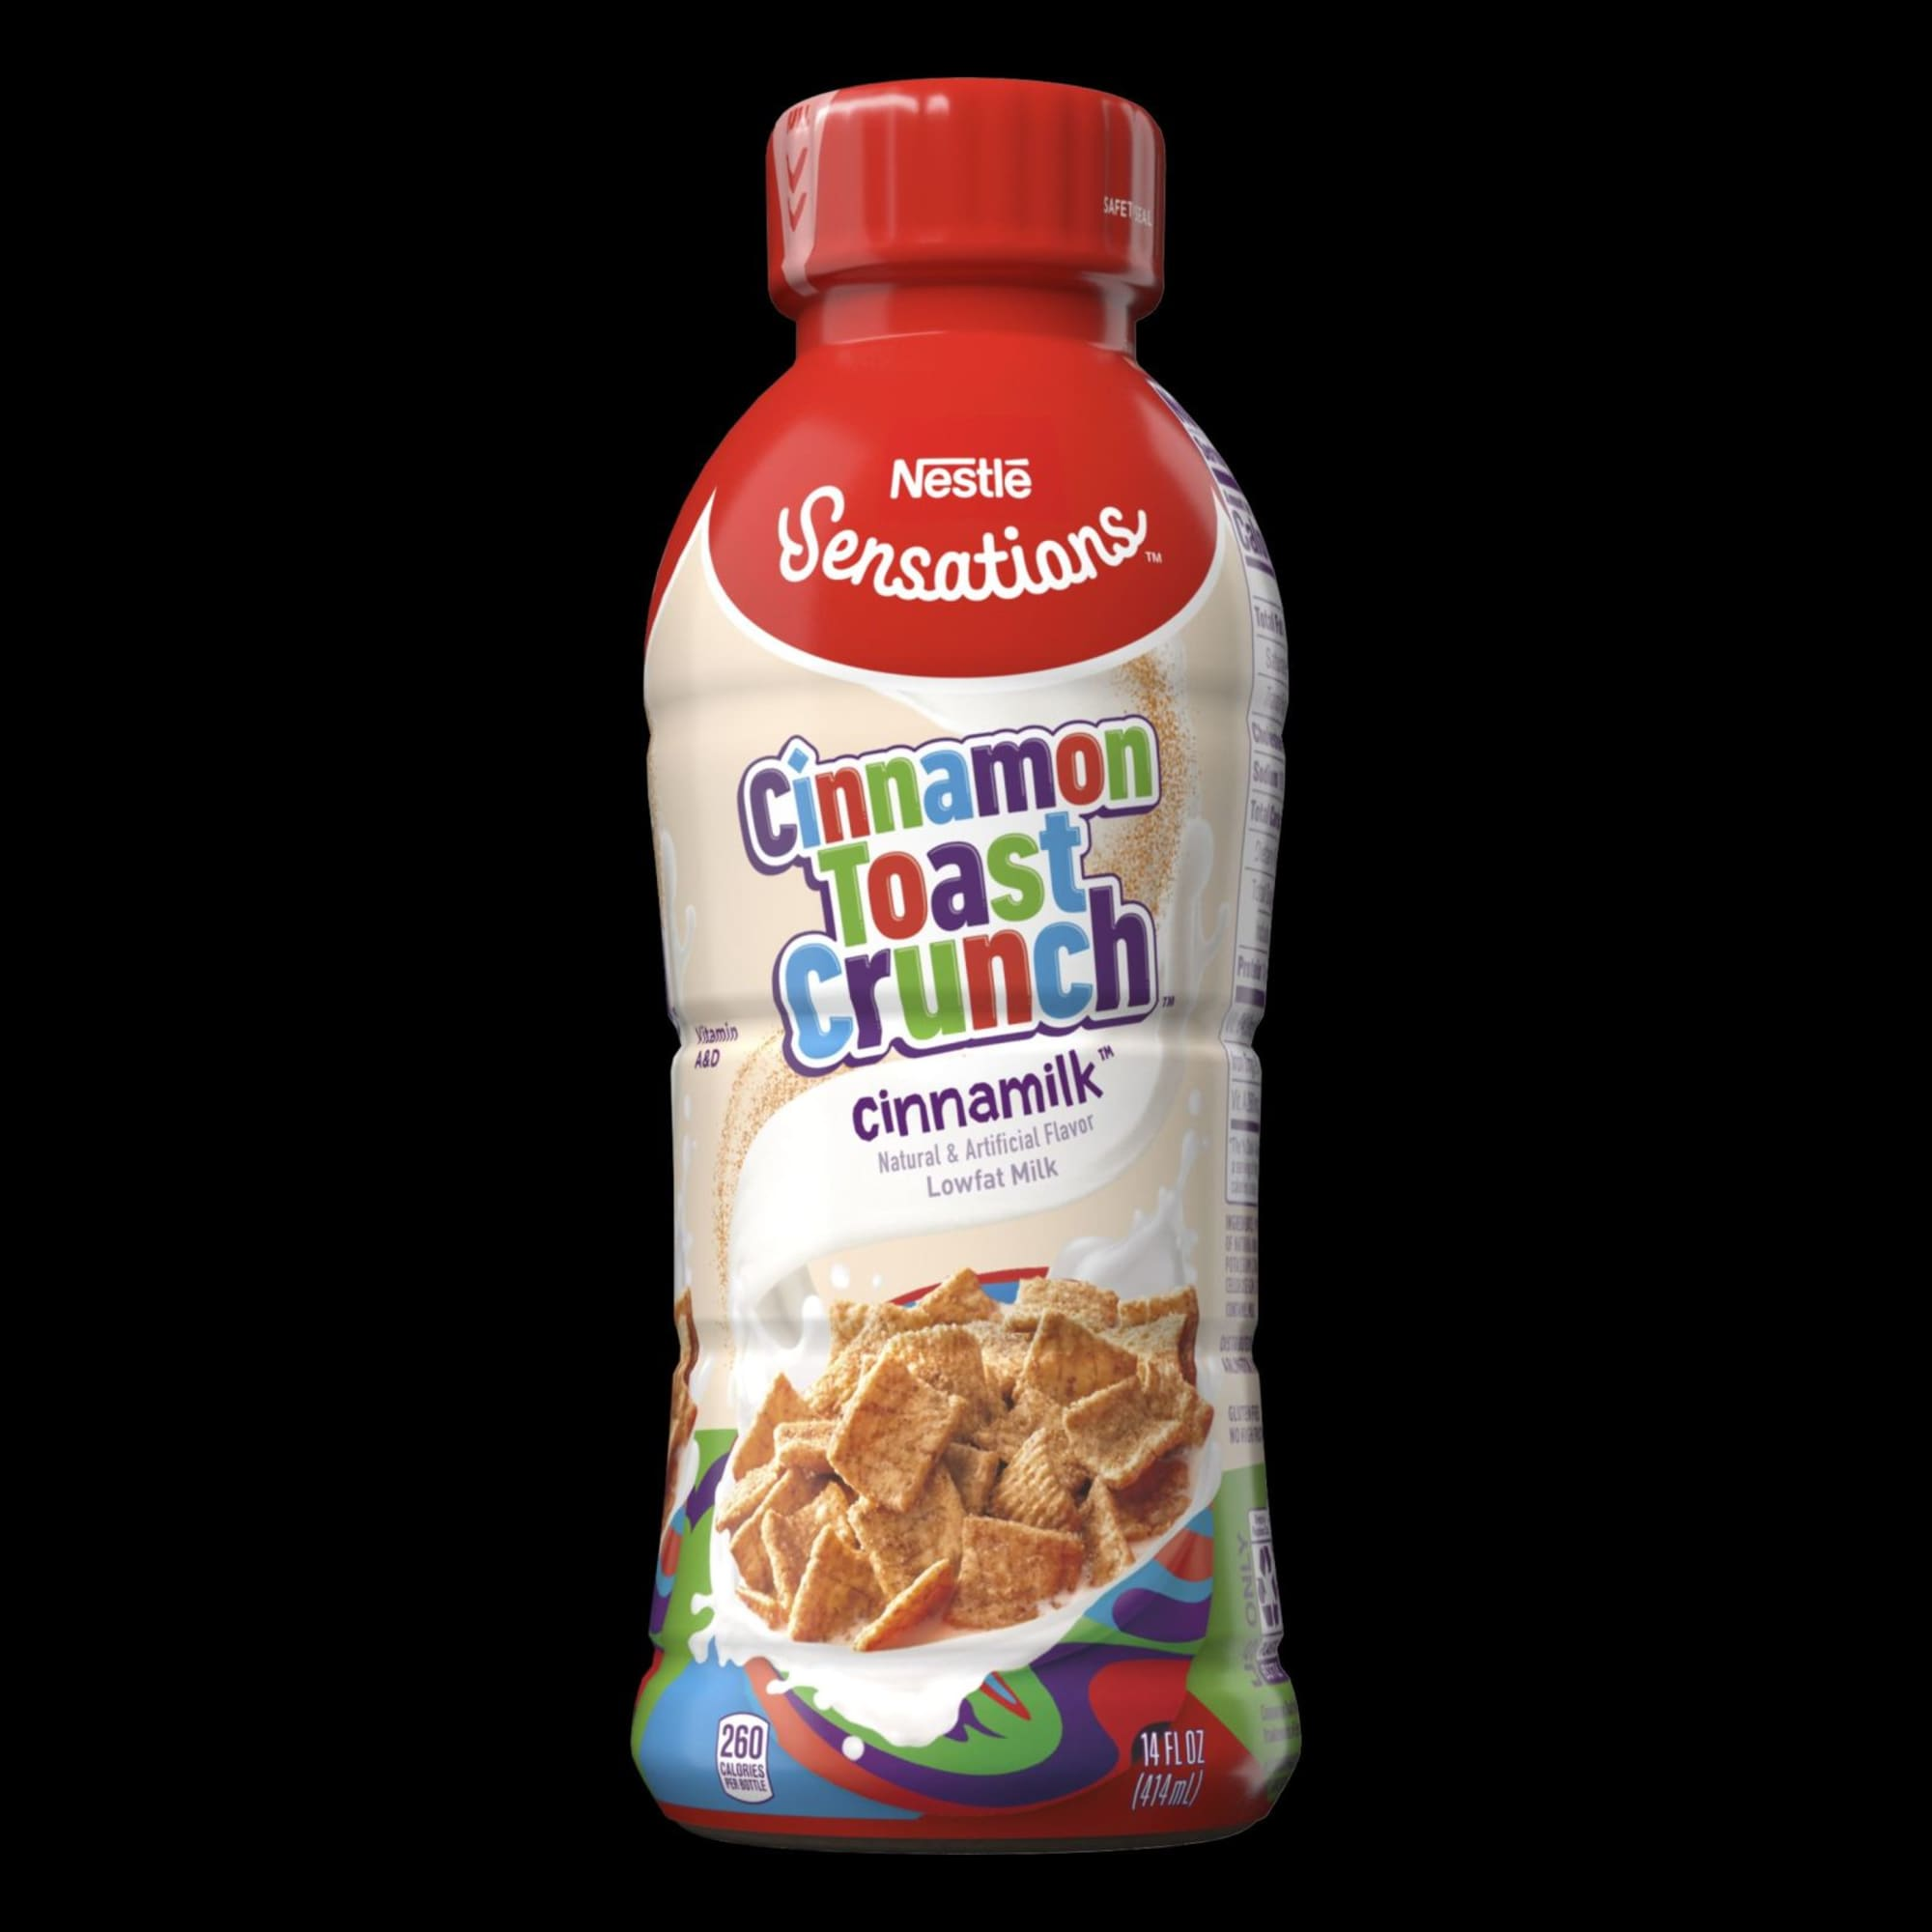 Nestle and Nesquik are giving us three new flavors of milk including a Cinnamon Toast Crunch